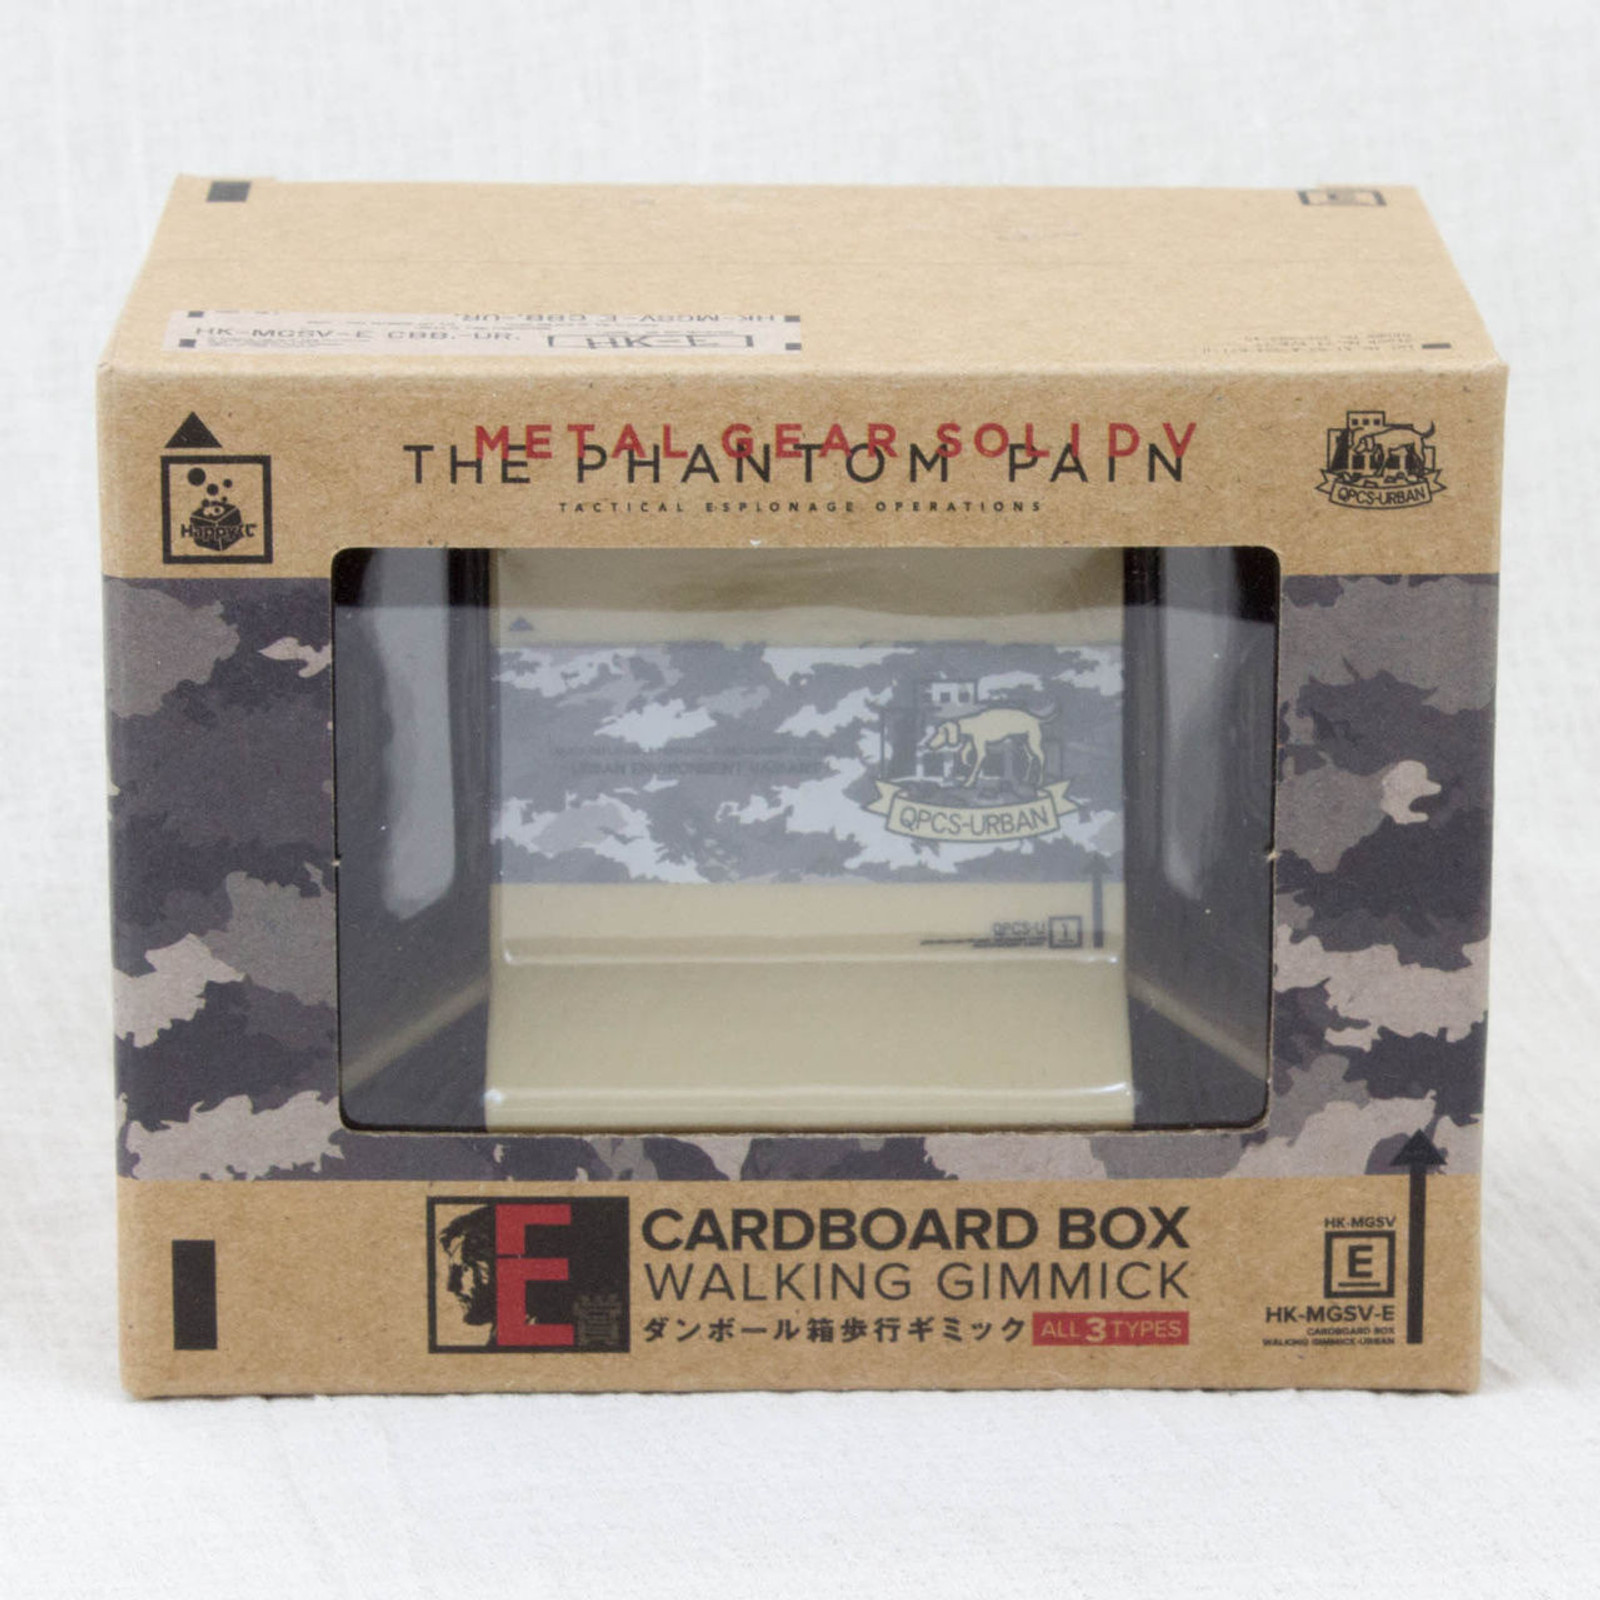 Metal Gear Solid V Cardbiard Box Walking Gimmick Wind Up Figure Urban Capcom